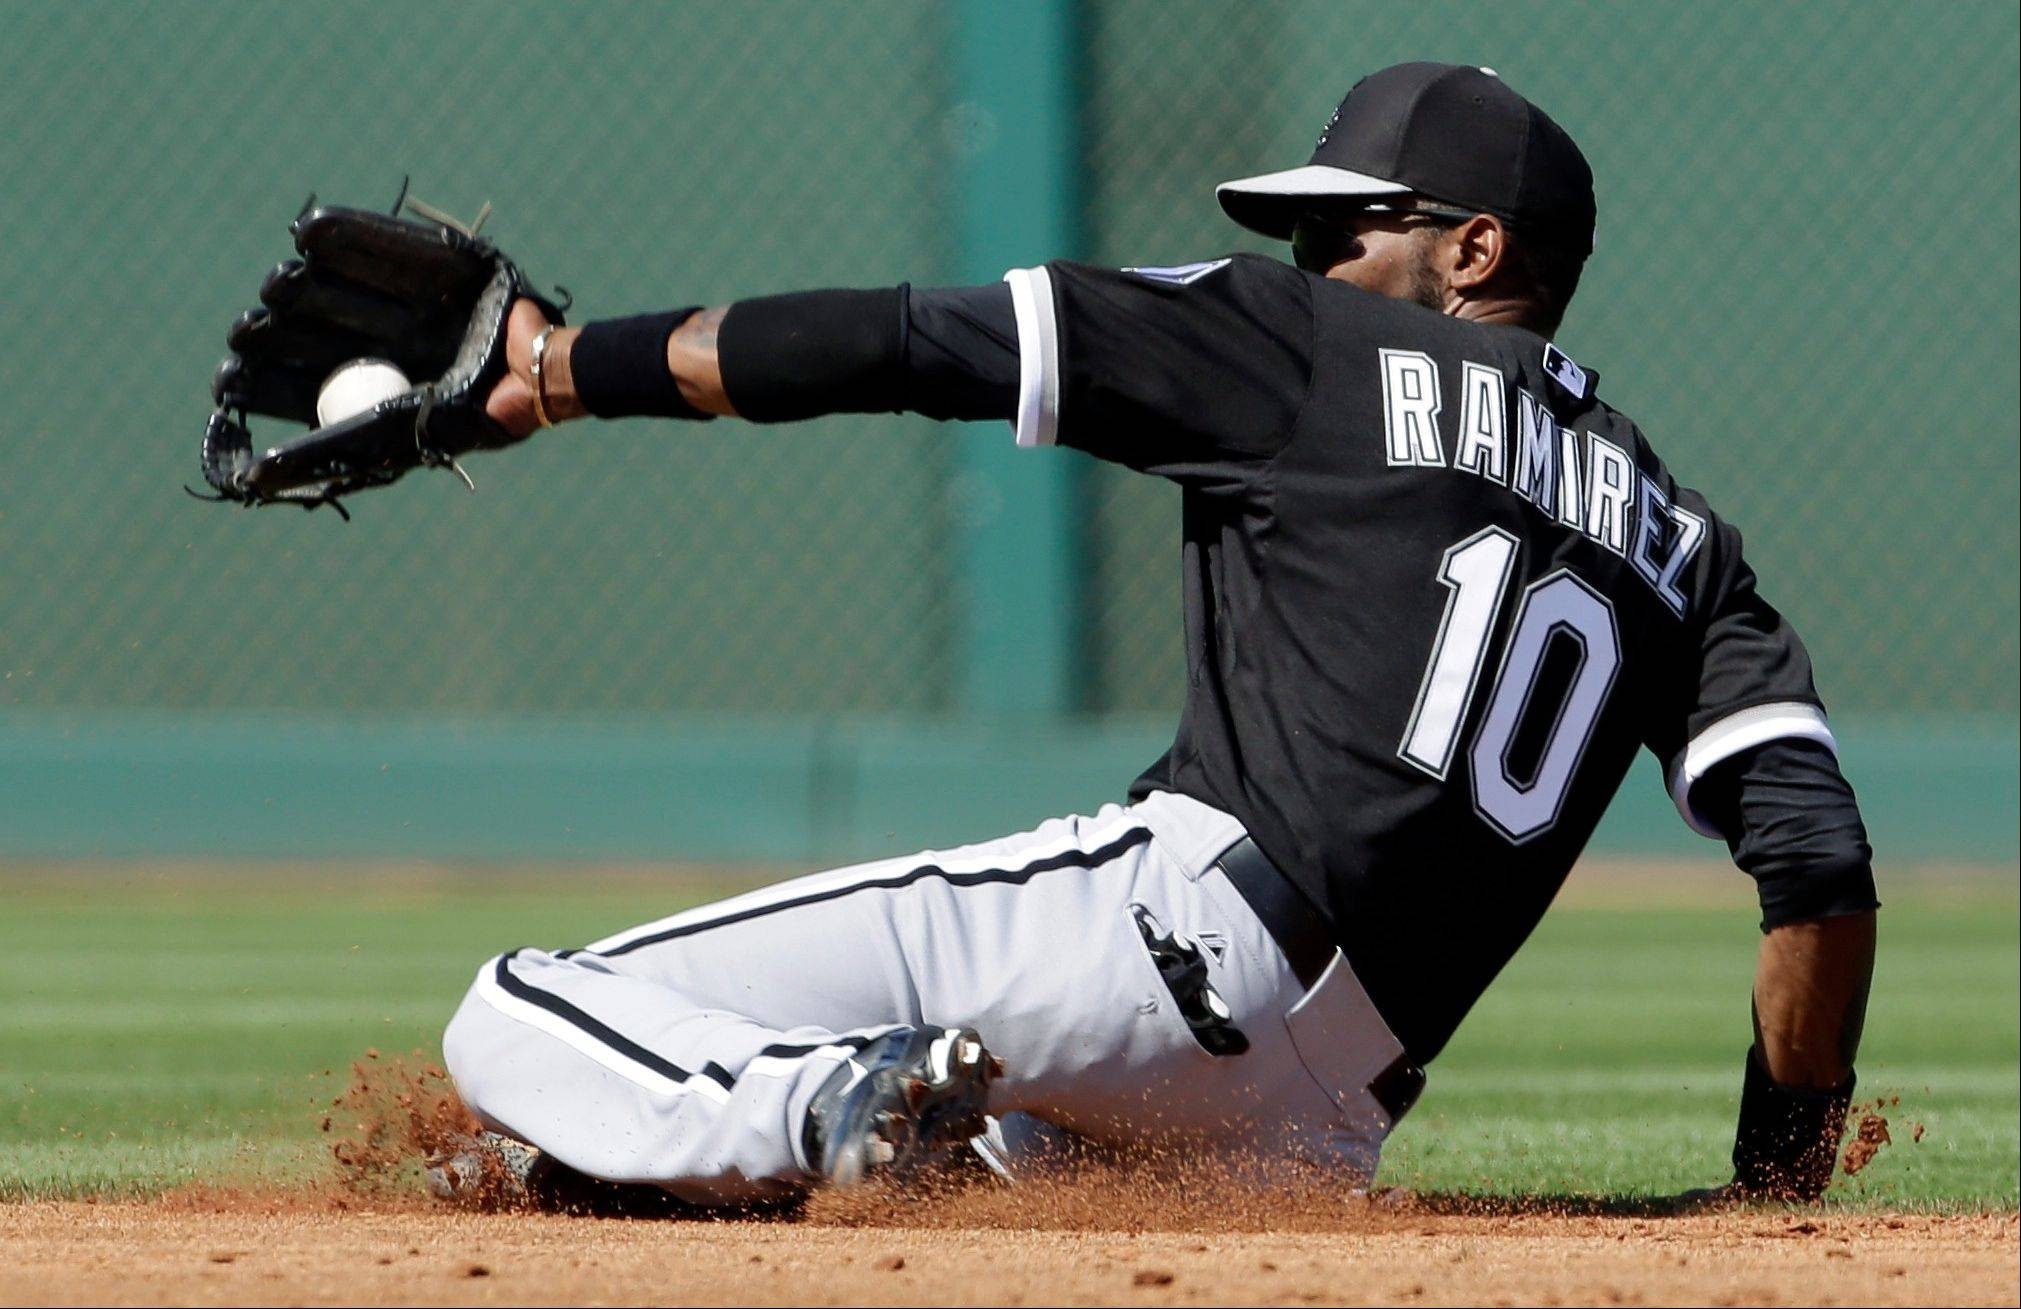 Alexei Ramirez makes a sliding stop on a ground ball by Cincinnati�s Devin Mesoraco on March 19 in a spring-training game. With defenders like Ramirez, Jeff Keppinger and Gordon Beckham, the White Sox figure to have another strong team defensively in 2013.